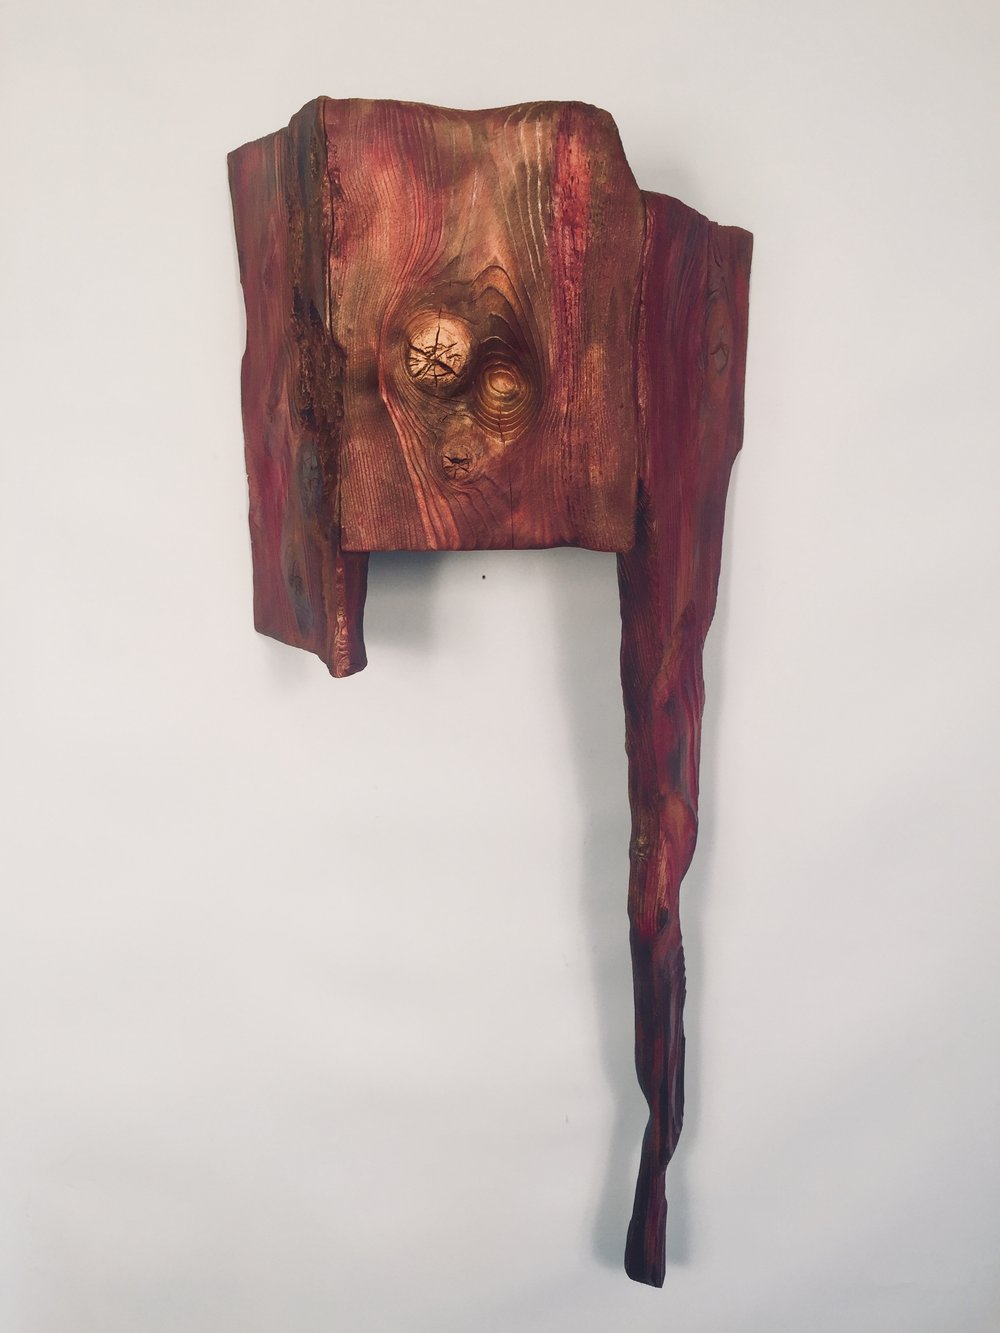 6 Joel Voisard_Incendiary VII_43x18x9_Wood and Pigment_2017__2000.jpg